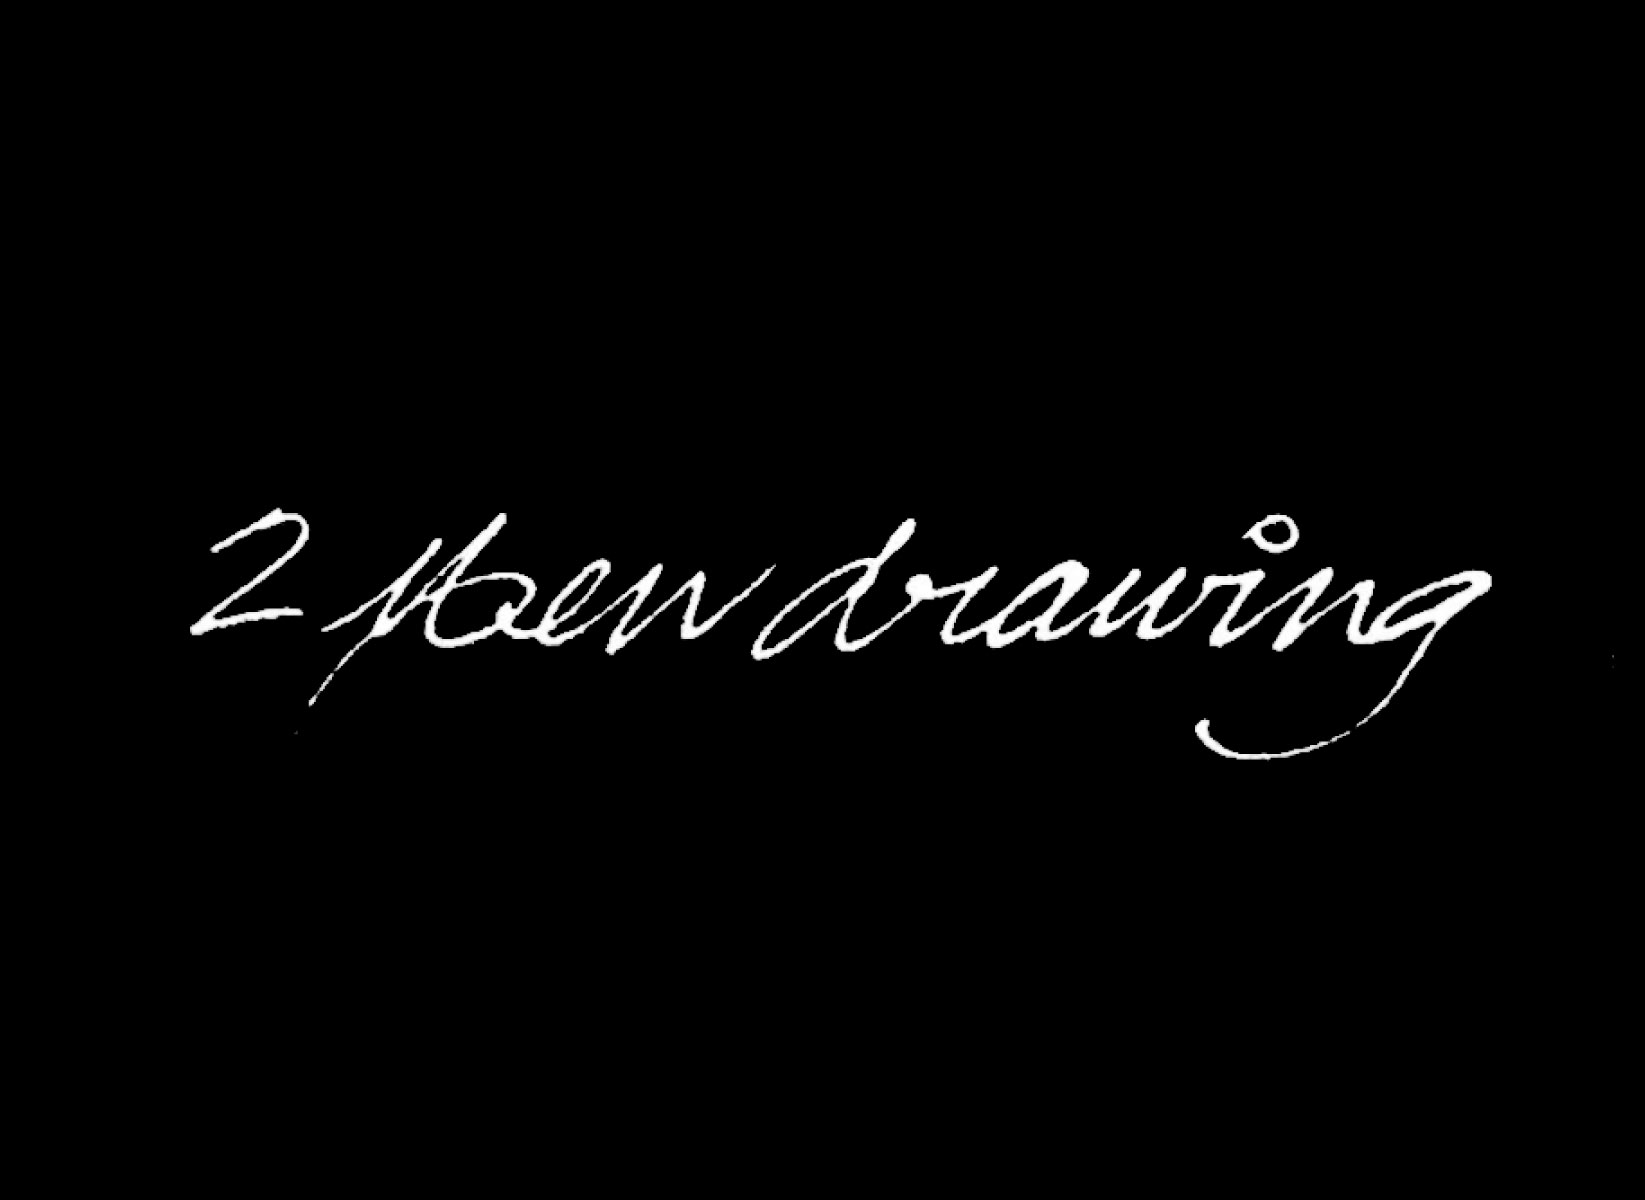 2 men drawing websites logo